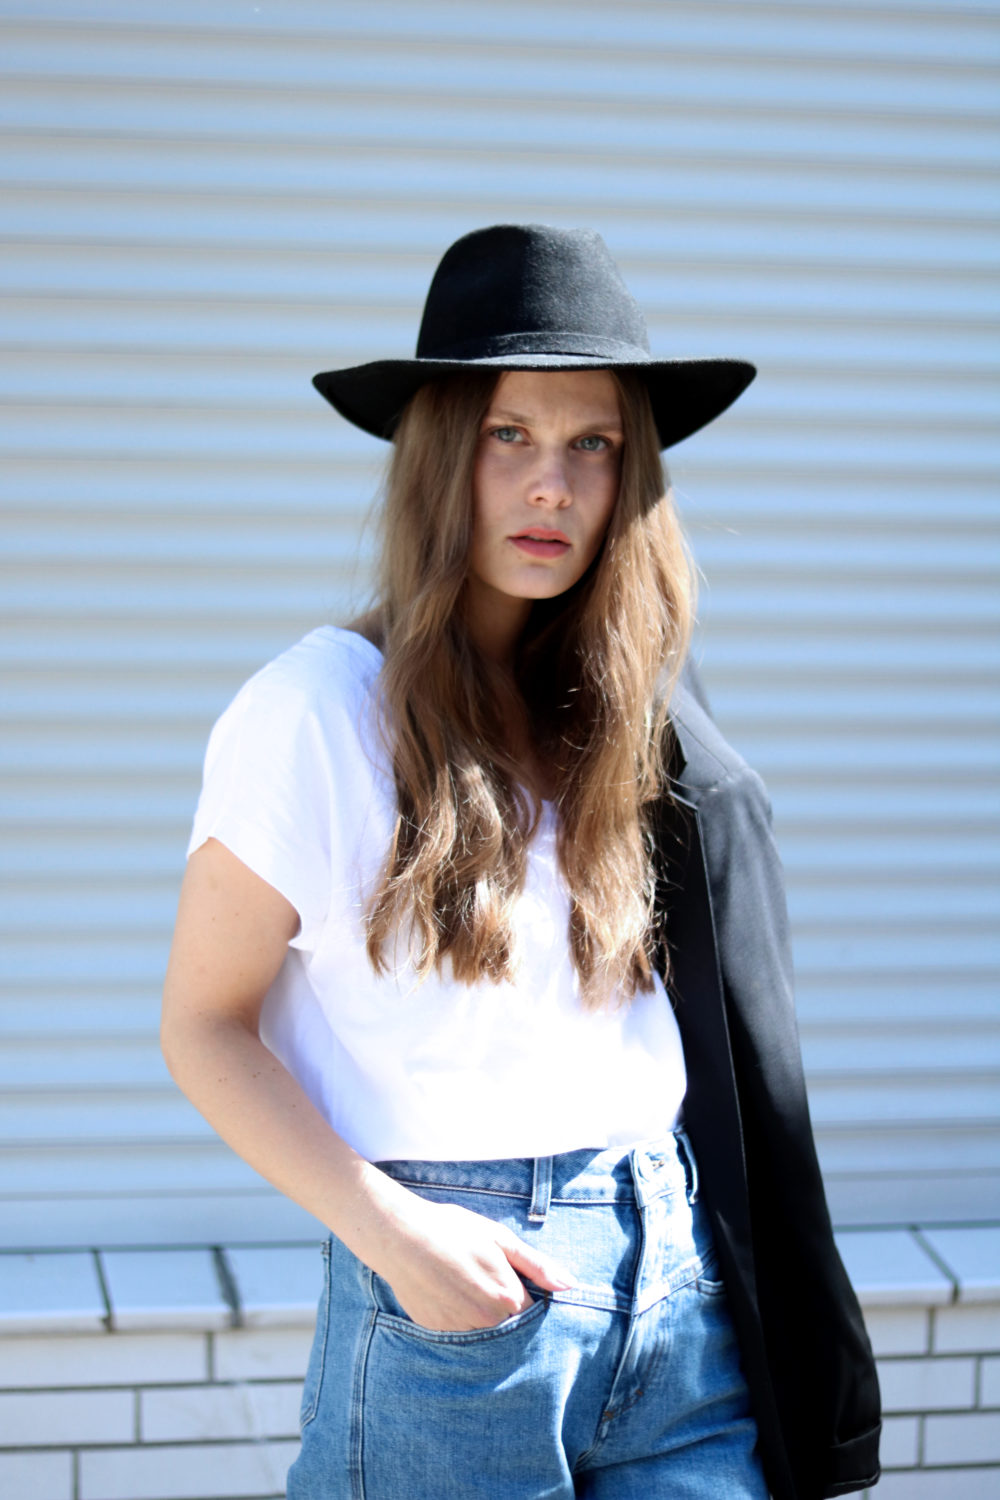 MEY_MARIDALOR_THE_WHITE_SHIRT_HALF_BODY_PORTRAIT_DENIM_HAT